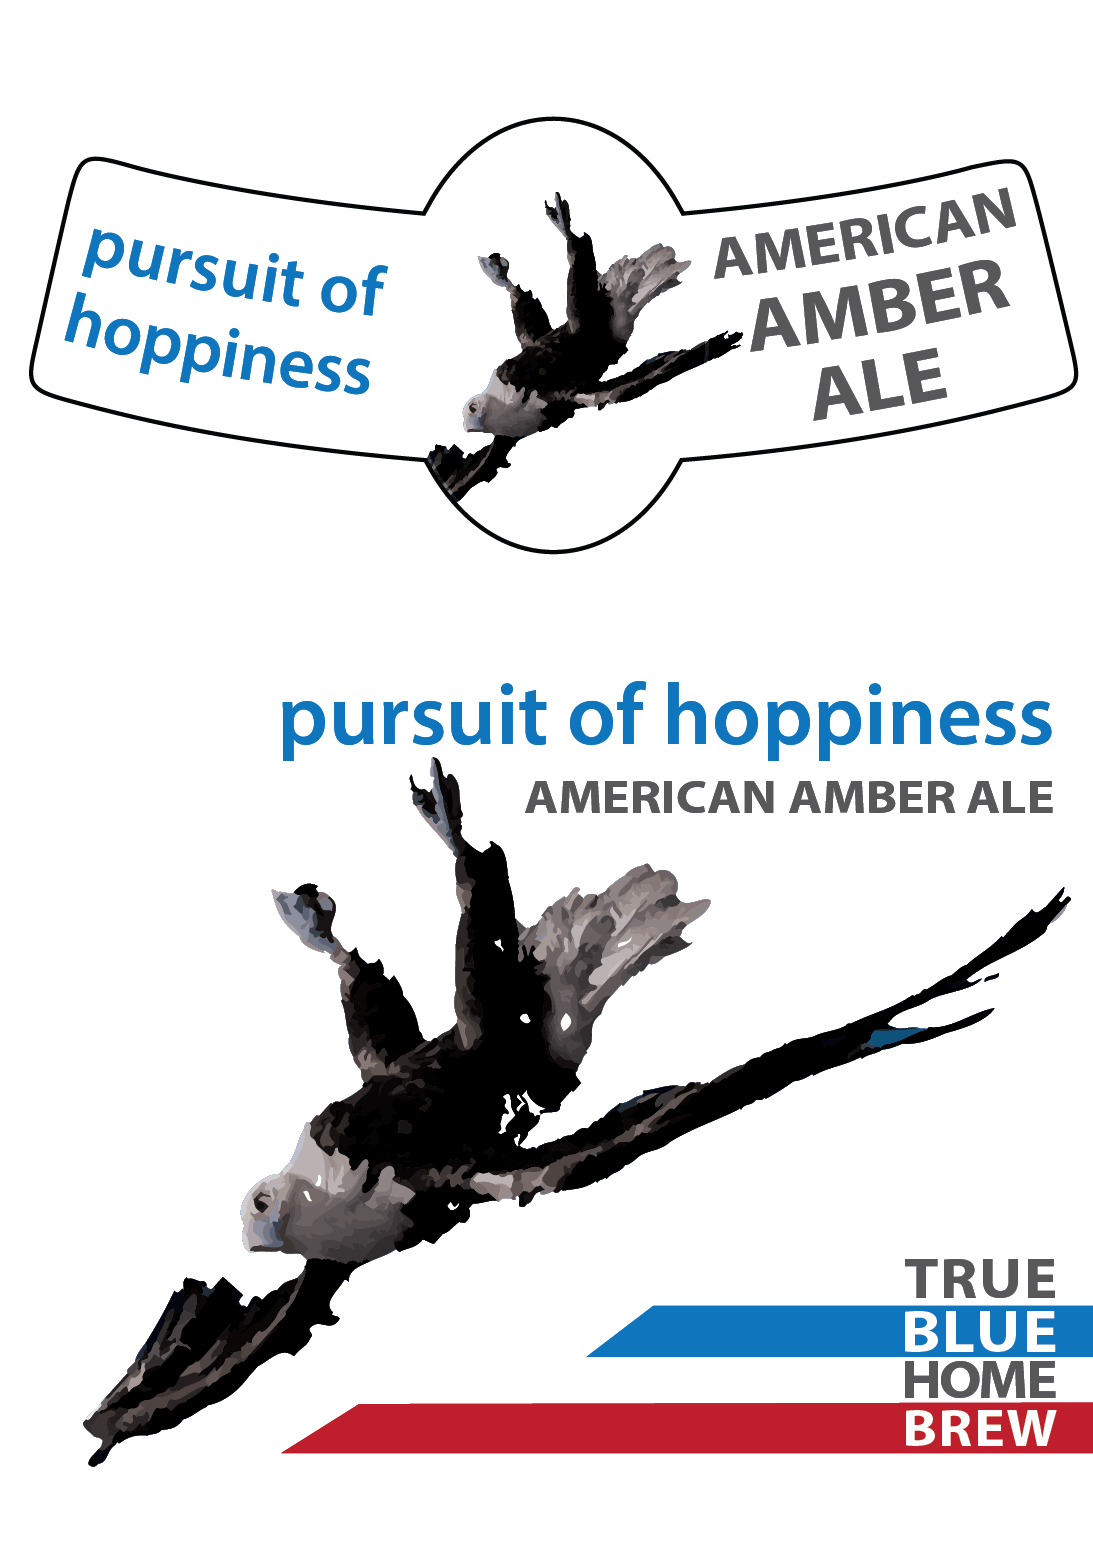 pursuitofHoppiness-01.png